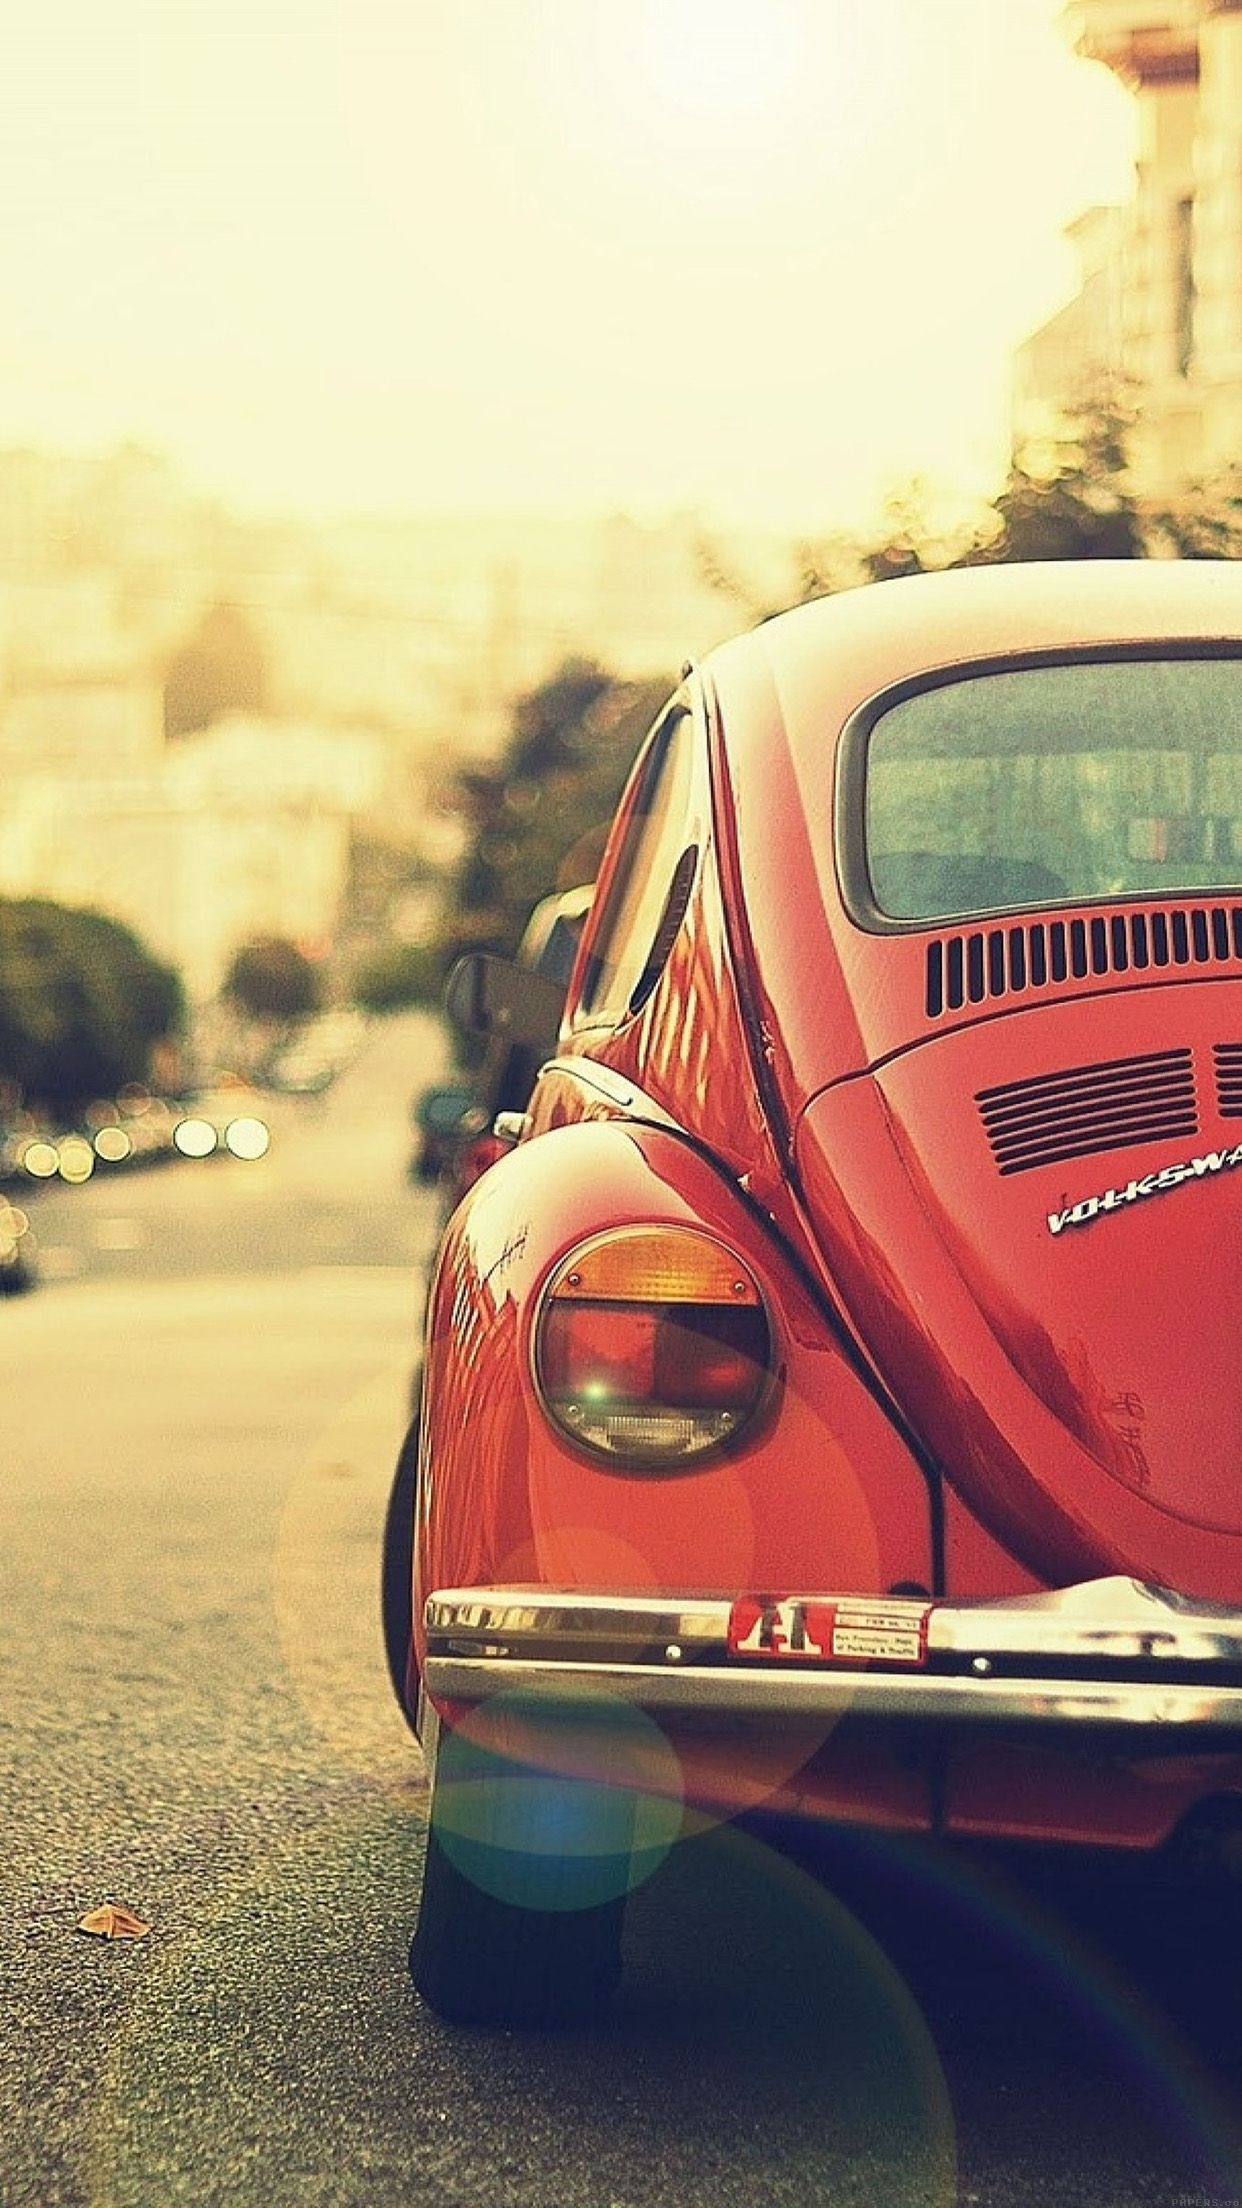 Old Car Street Vintage 34 Iphone6 Plus Wallpaper 1242x2208